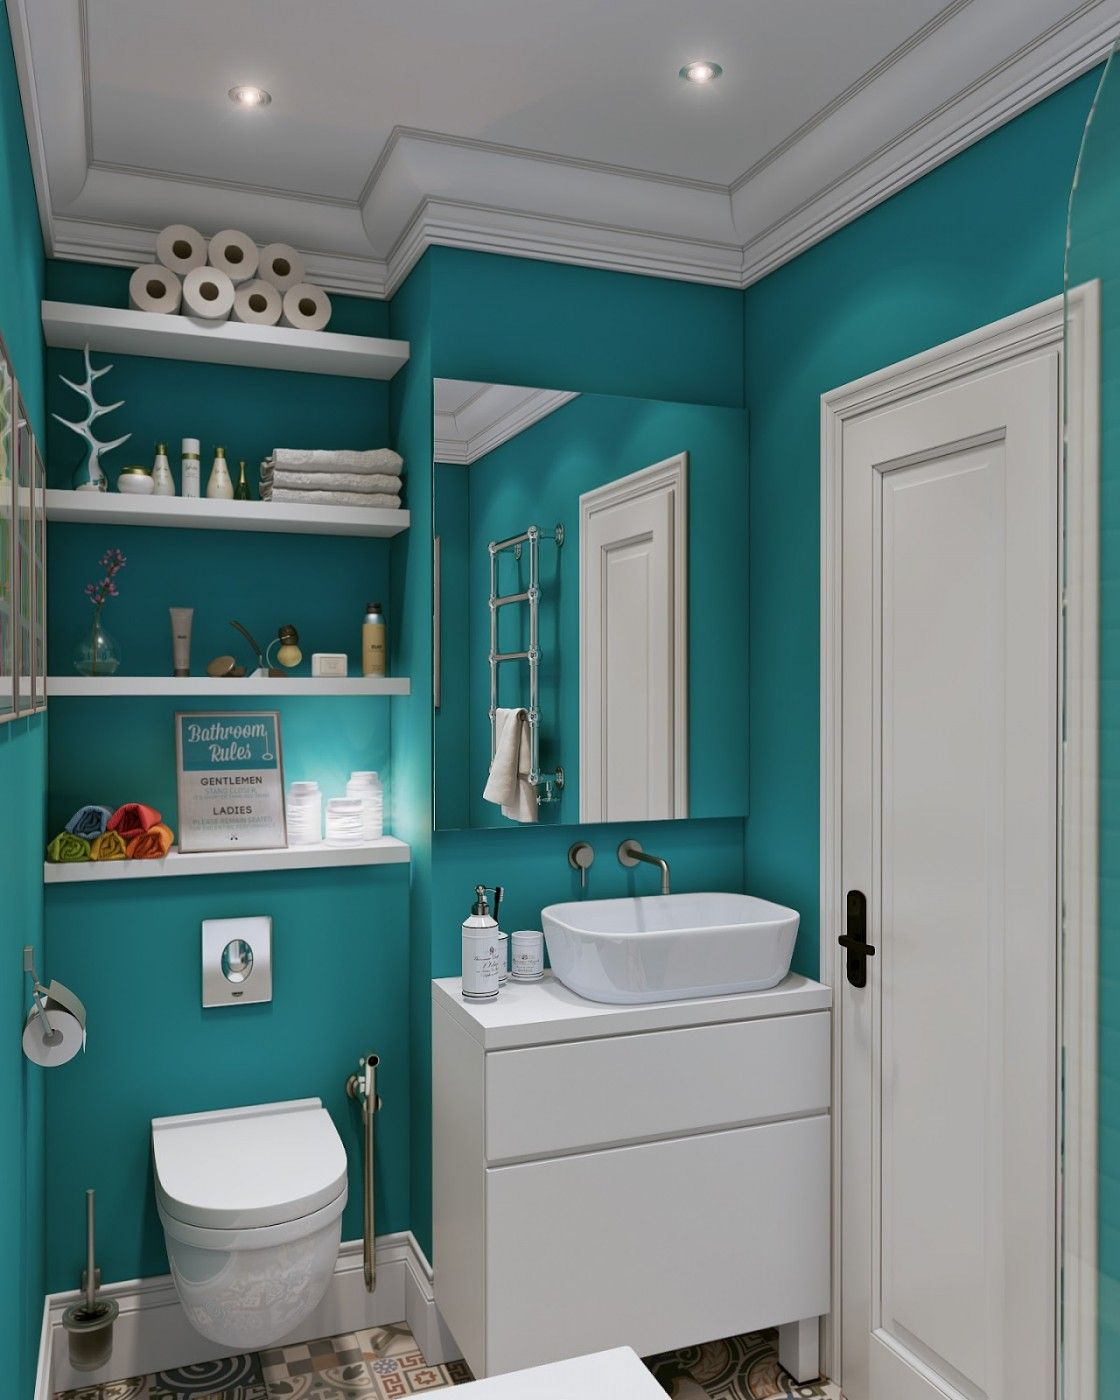 Small Bathroom Design Ideas Color Schemes bathroom Contemporary Teal Bathroom Wall Color Scheme With Wooden Shelves Above Toilet As